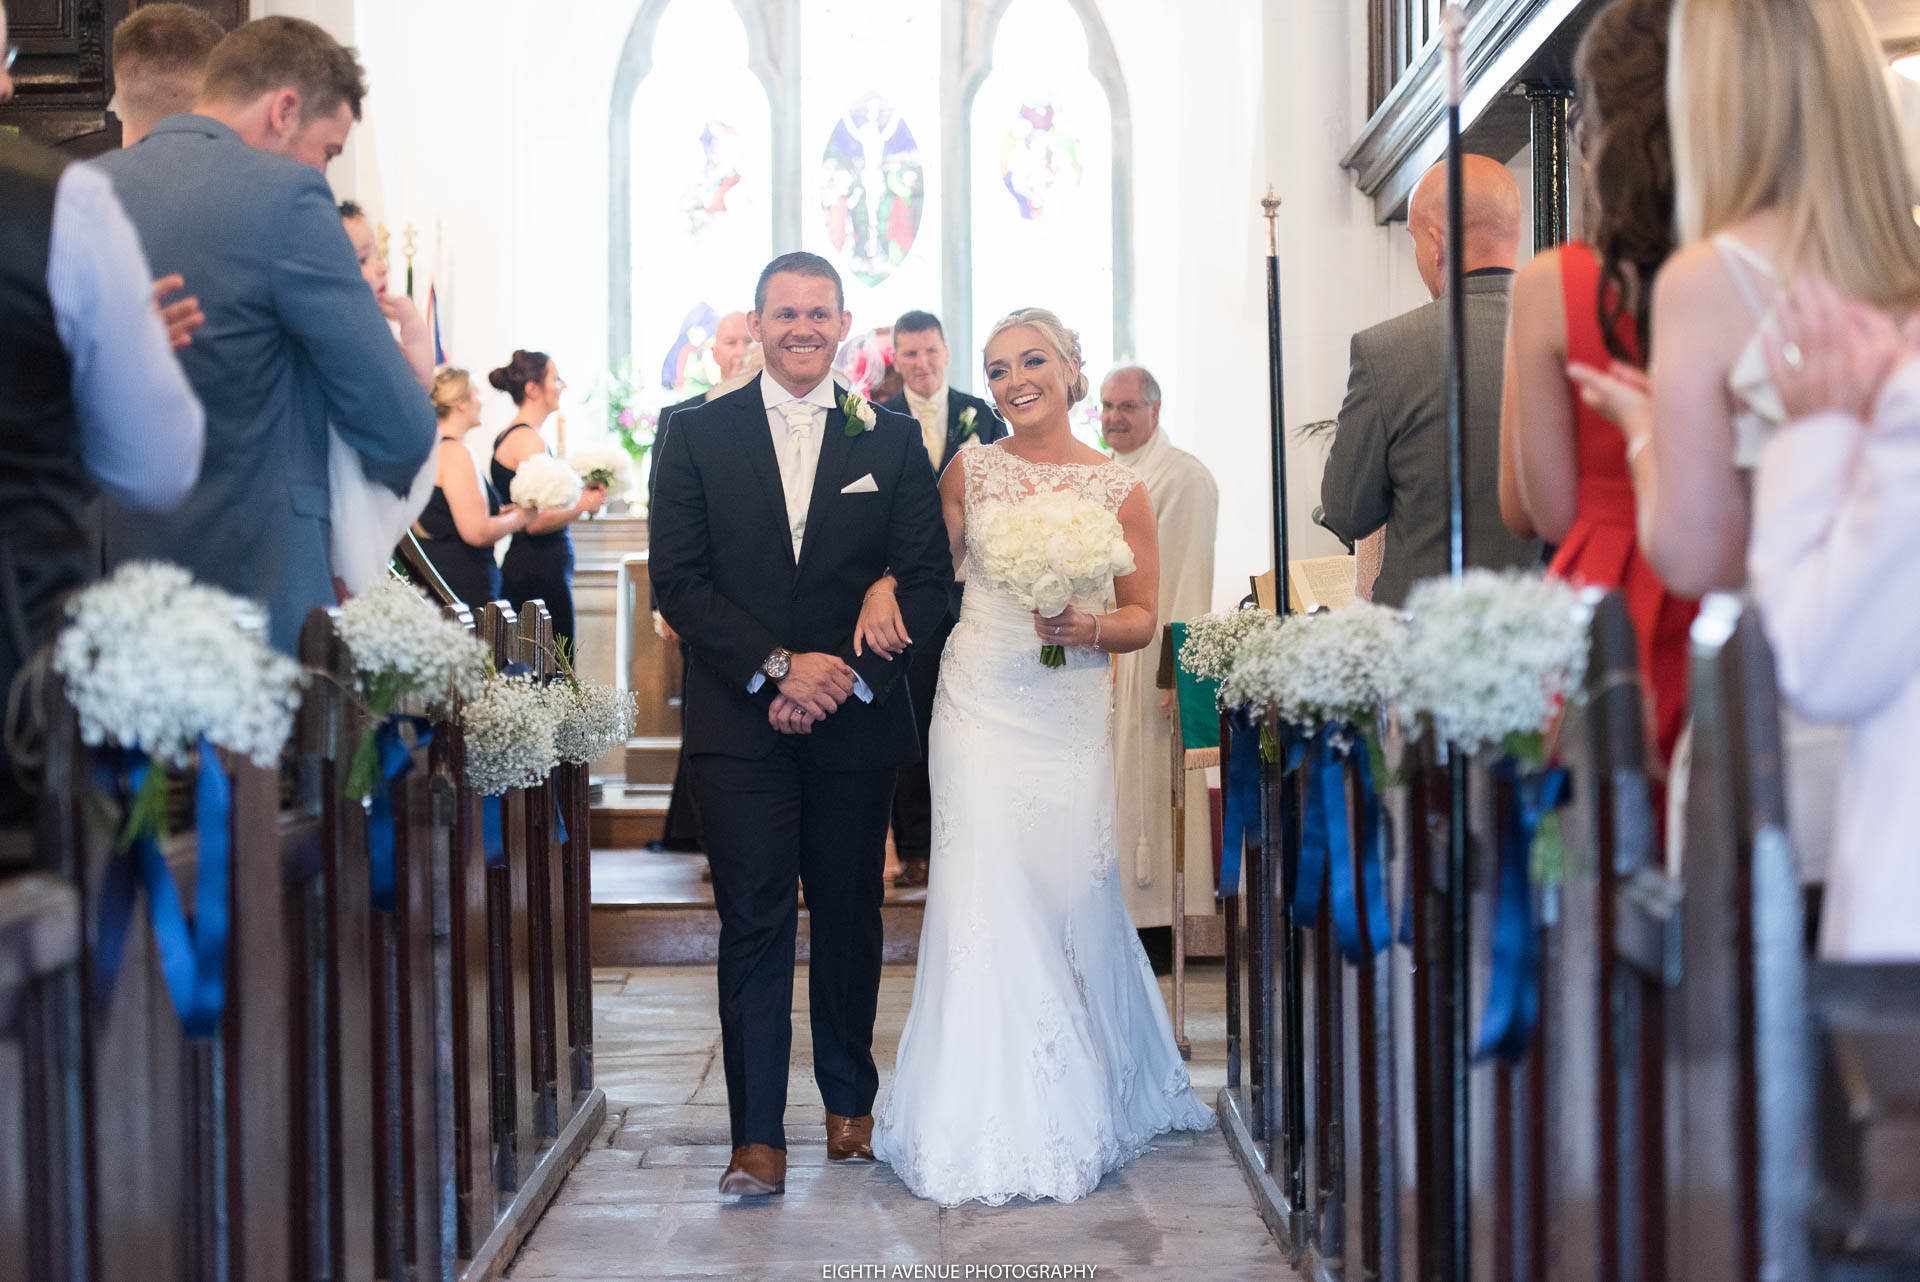 Bride and groom walking down the isle at their church wedding